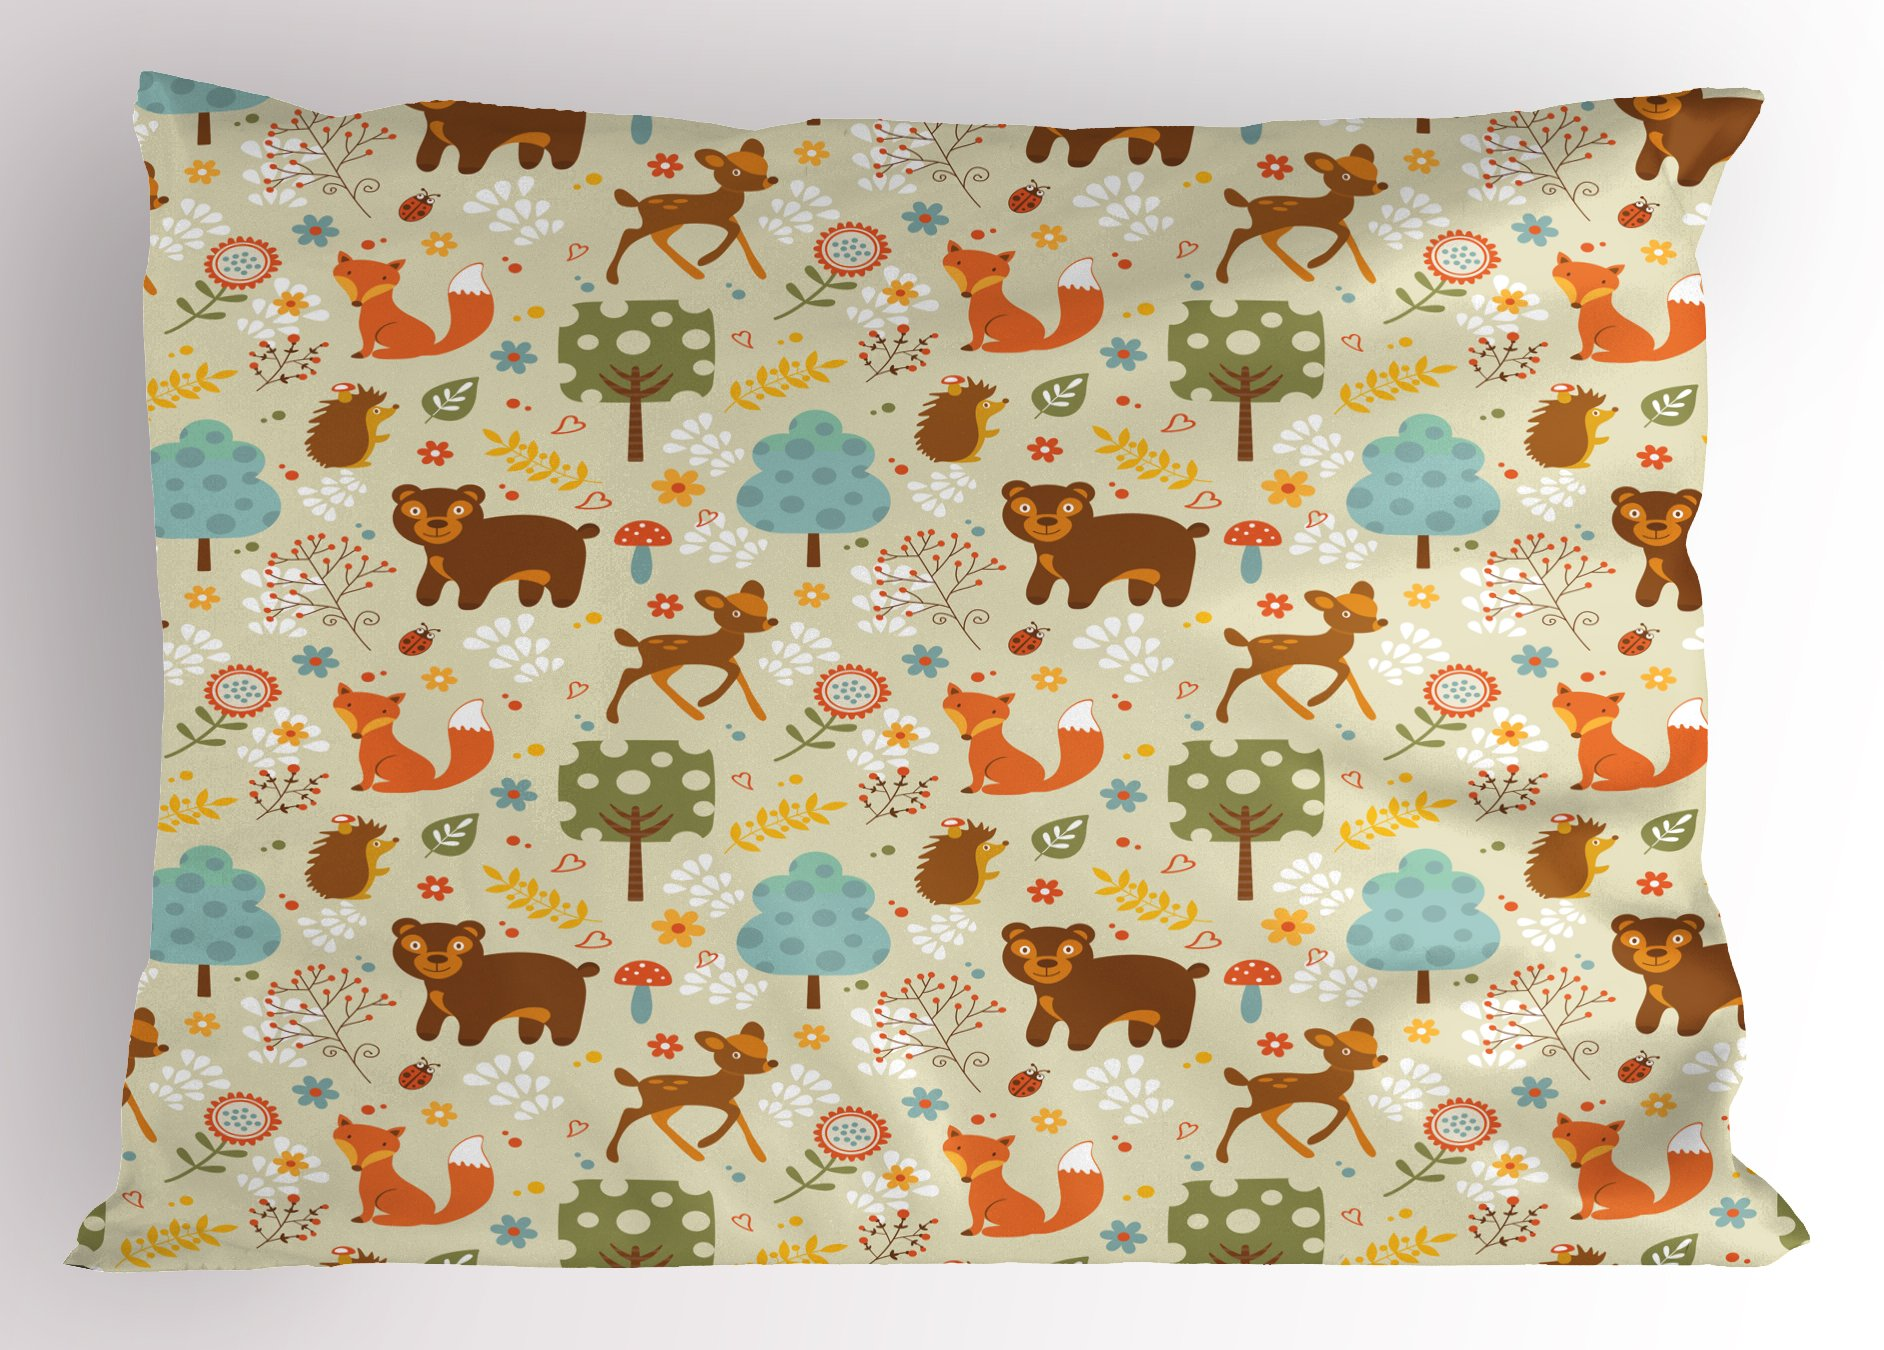 Lunarable Woodland Pillow Sham, Animals of The Woods in Pastel Colors Cheerful Bear Hedgehog Gazelle Fox Ladybug, Decorative Standard King Size Printed Pillowcase, 36 X 20 inches, Multicolor